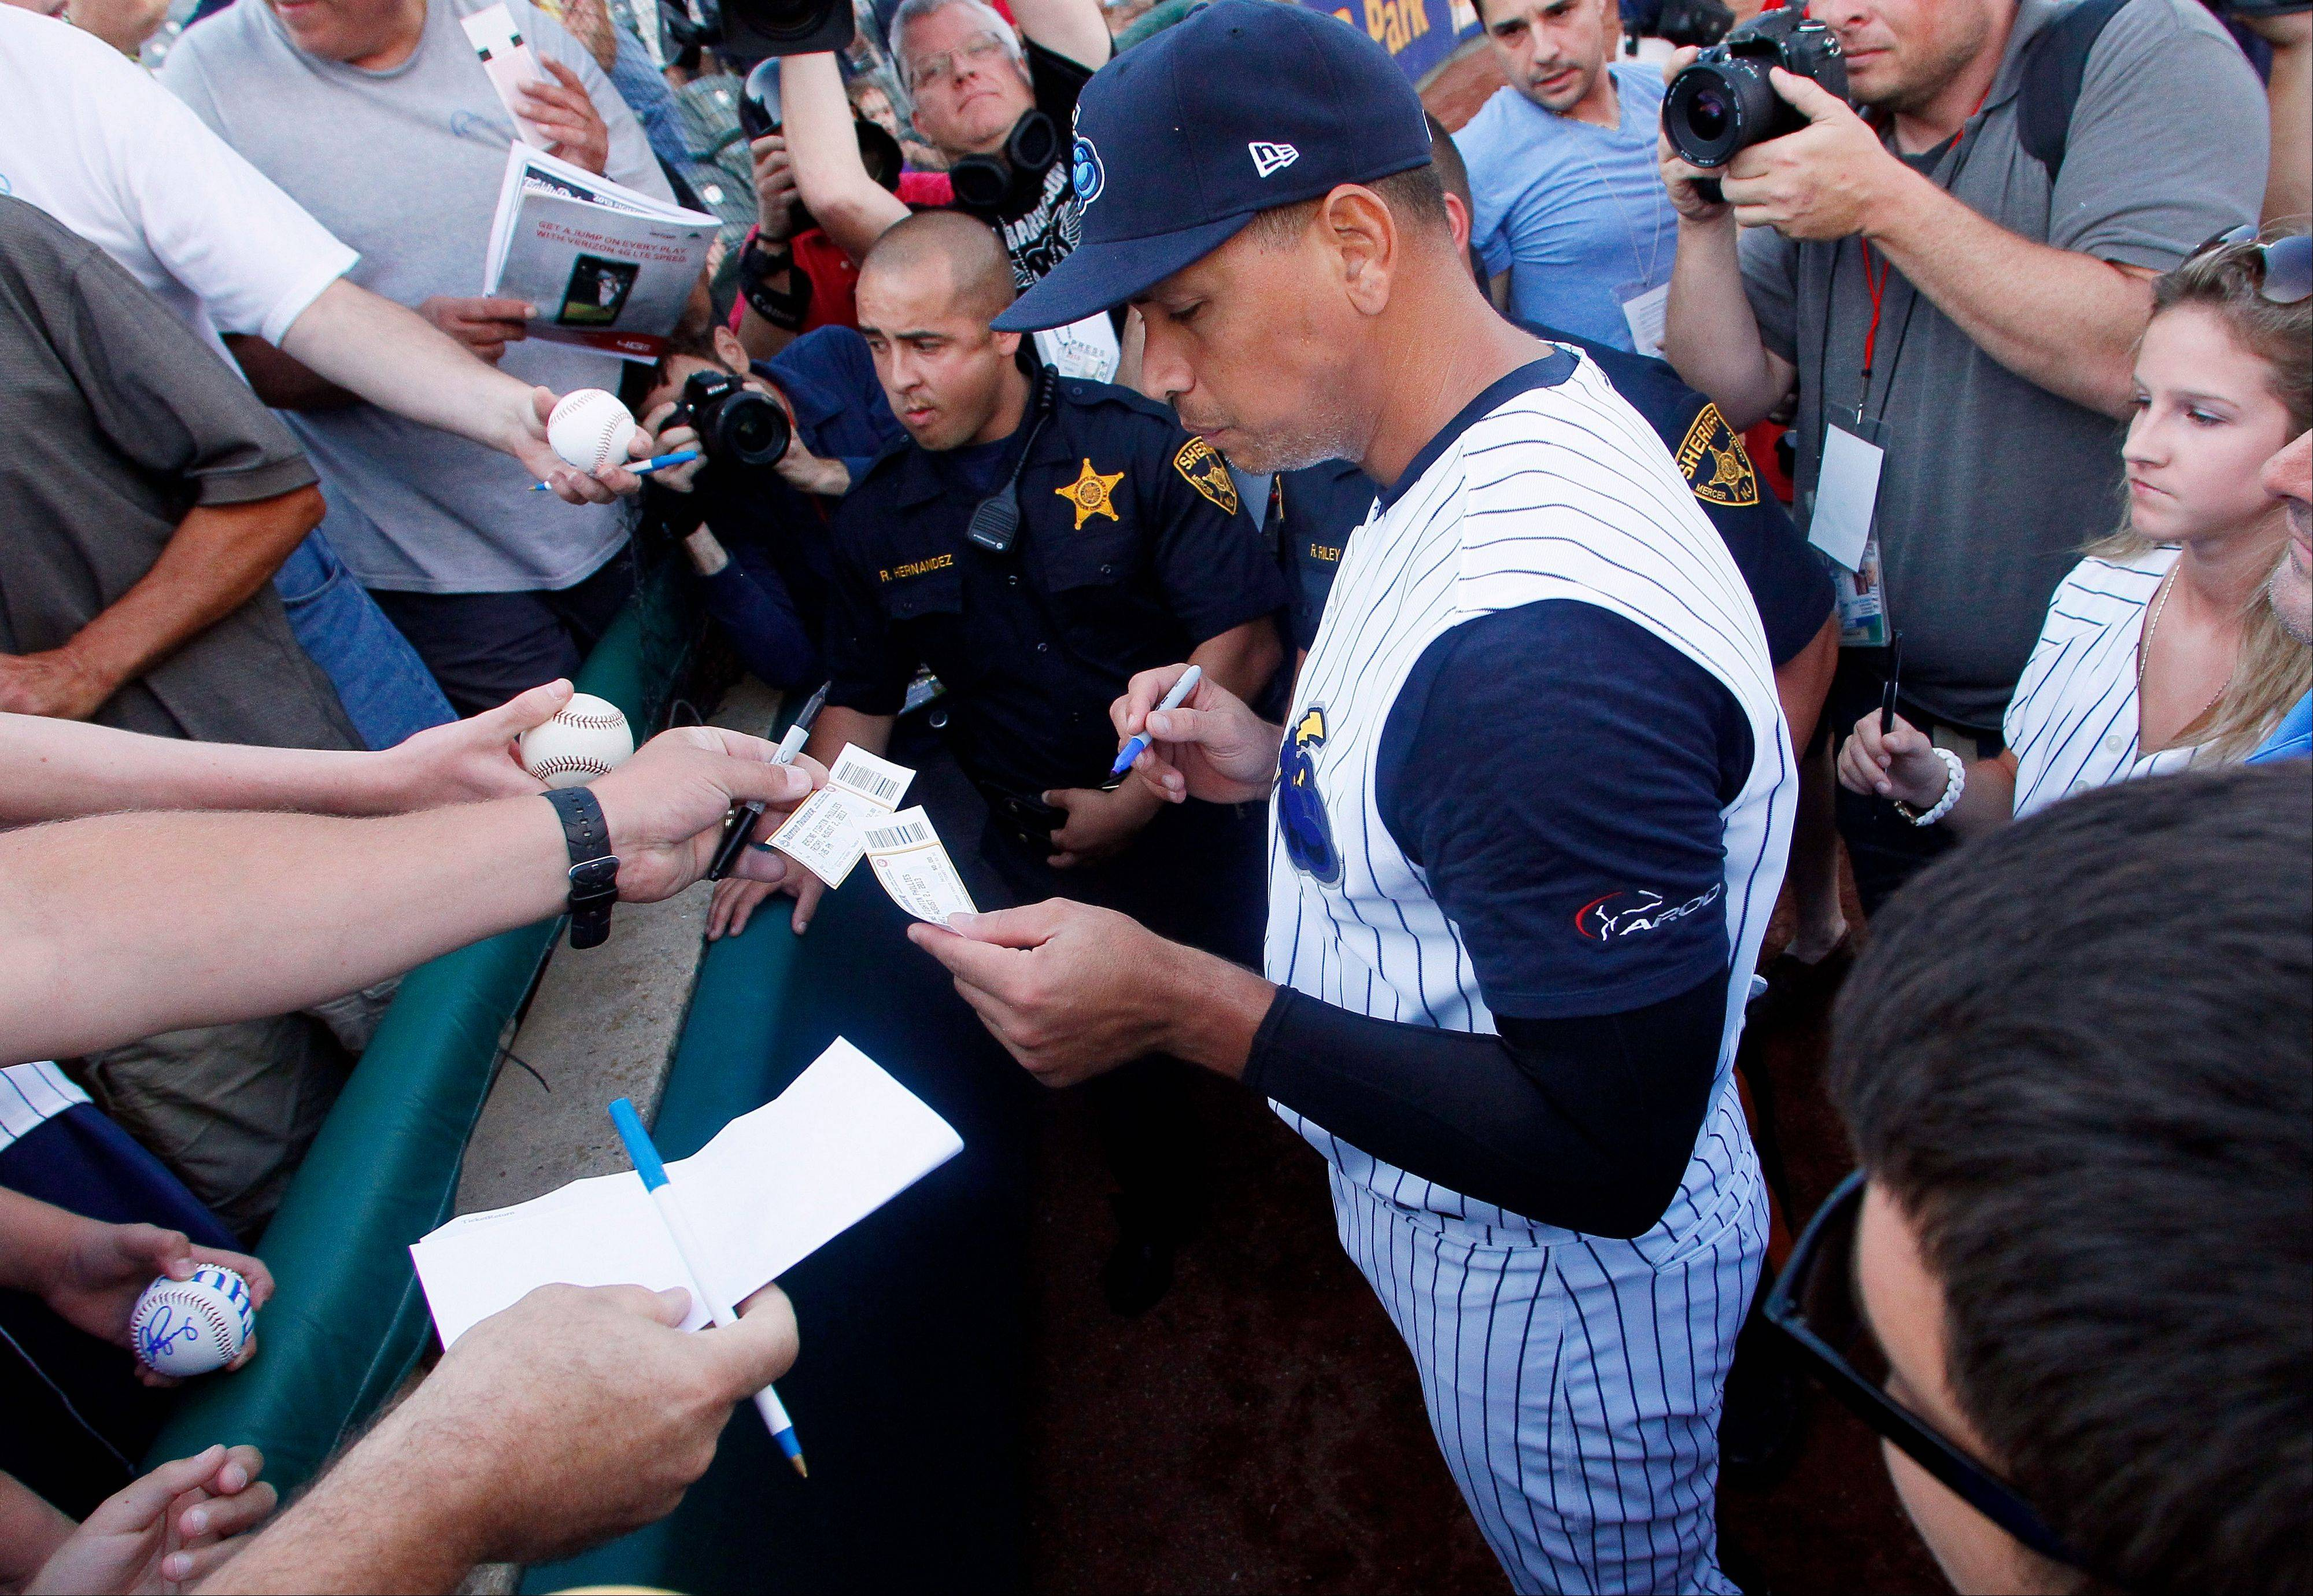 New York Yankees� Alex Rodriguez autographs a ticket stub for a fan before the start of a Class AA baseball game with the Trenton Thunder against the Reading Phillies, Friday, Aug. 2, 2013, in Trenton, N.J.